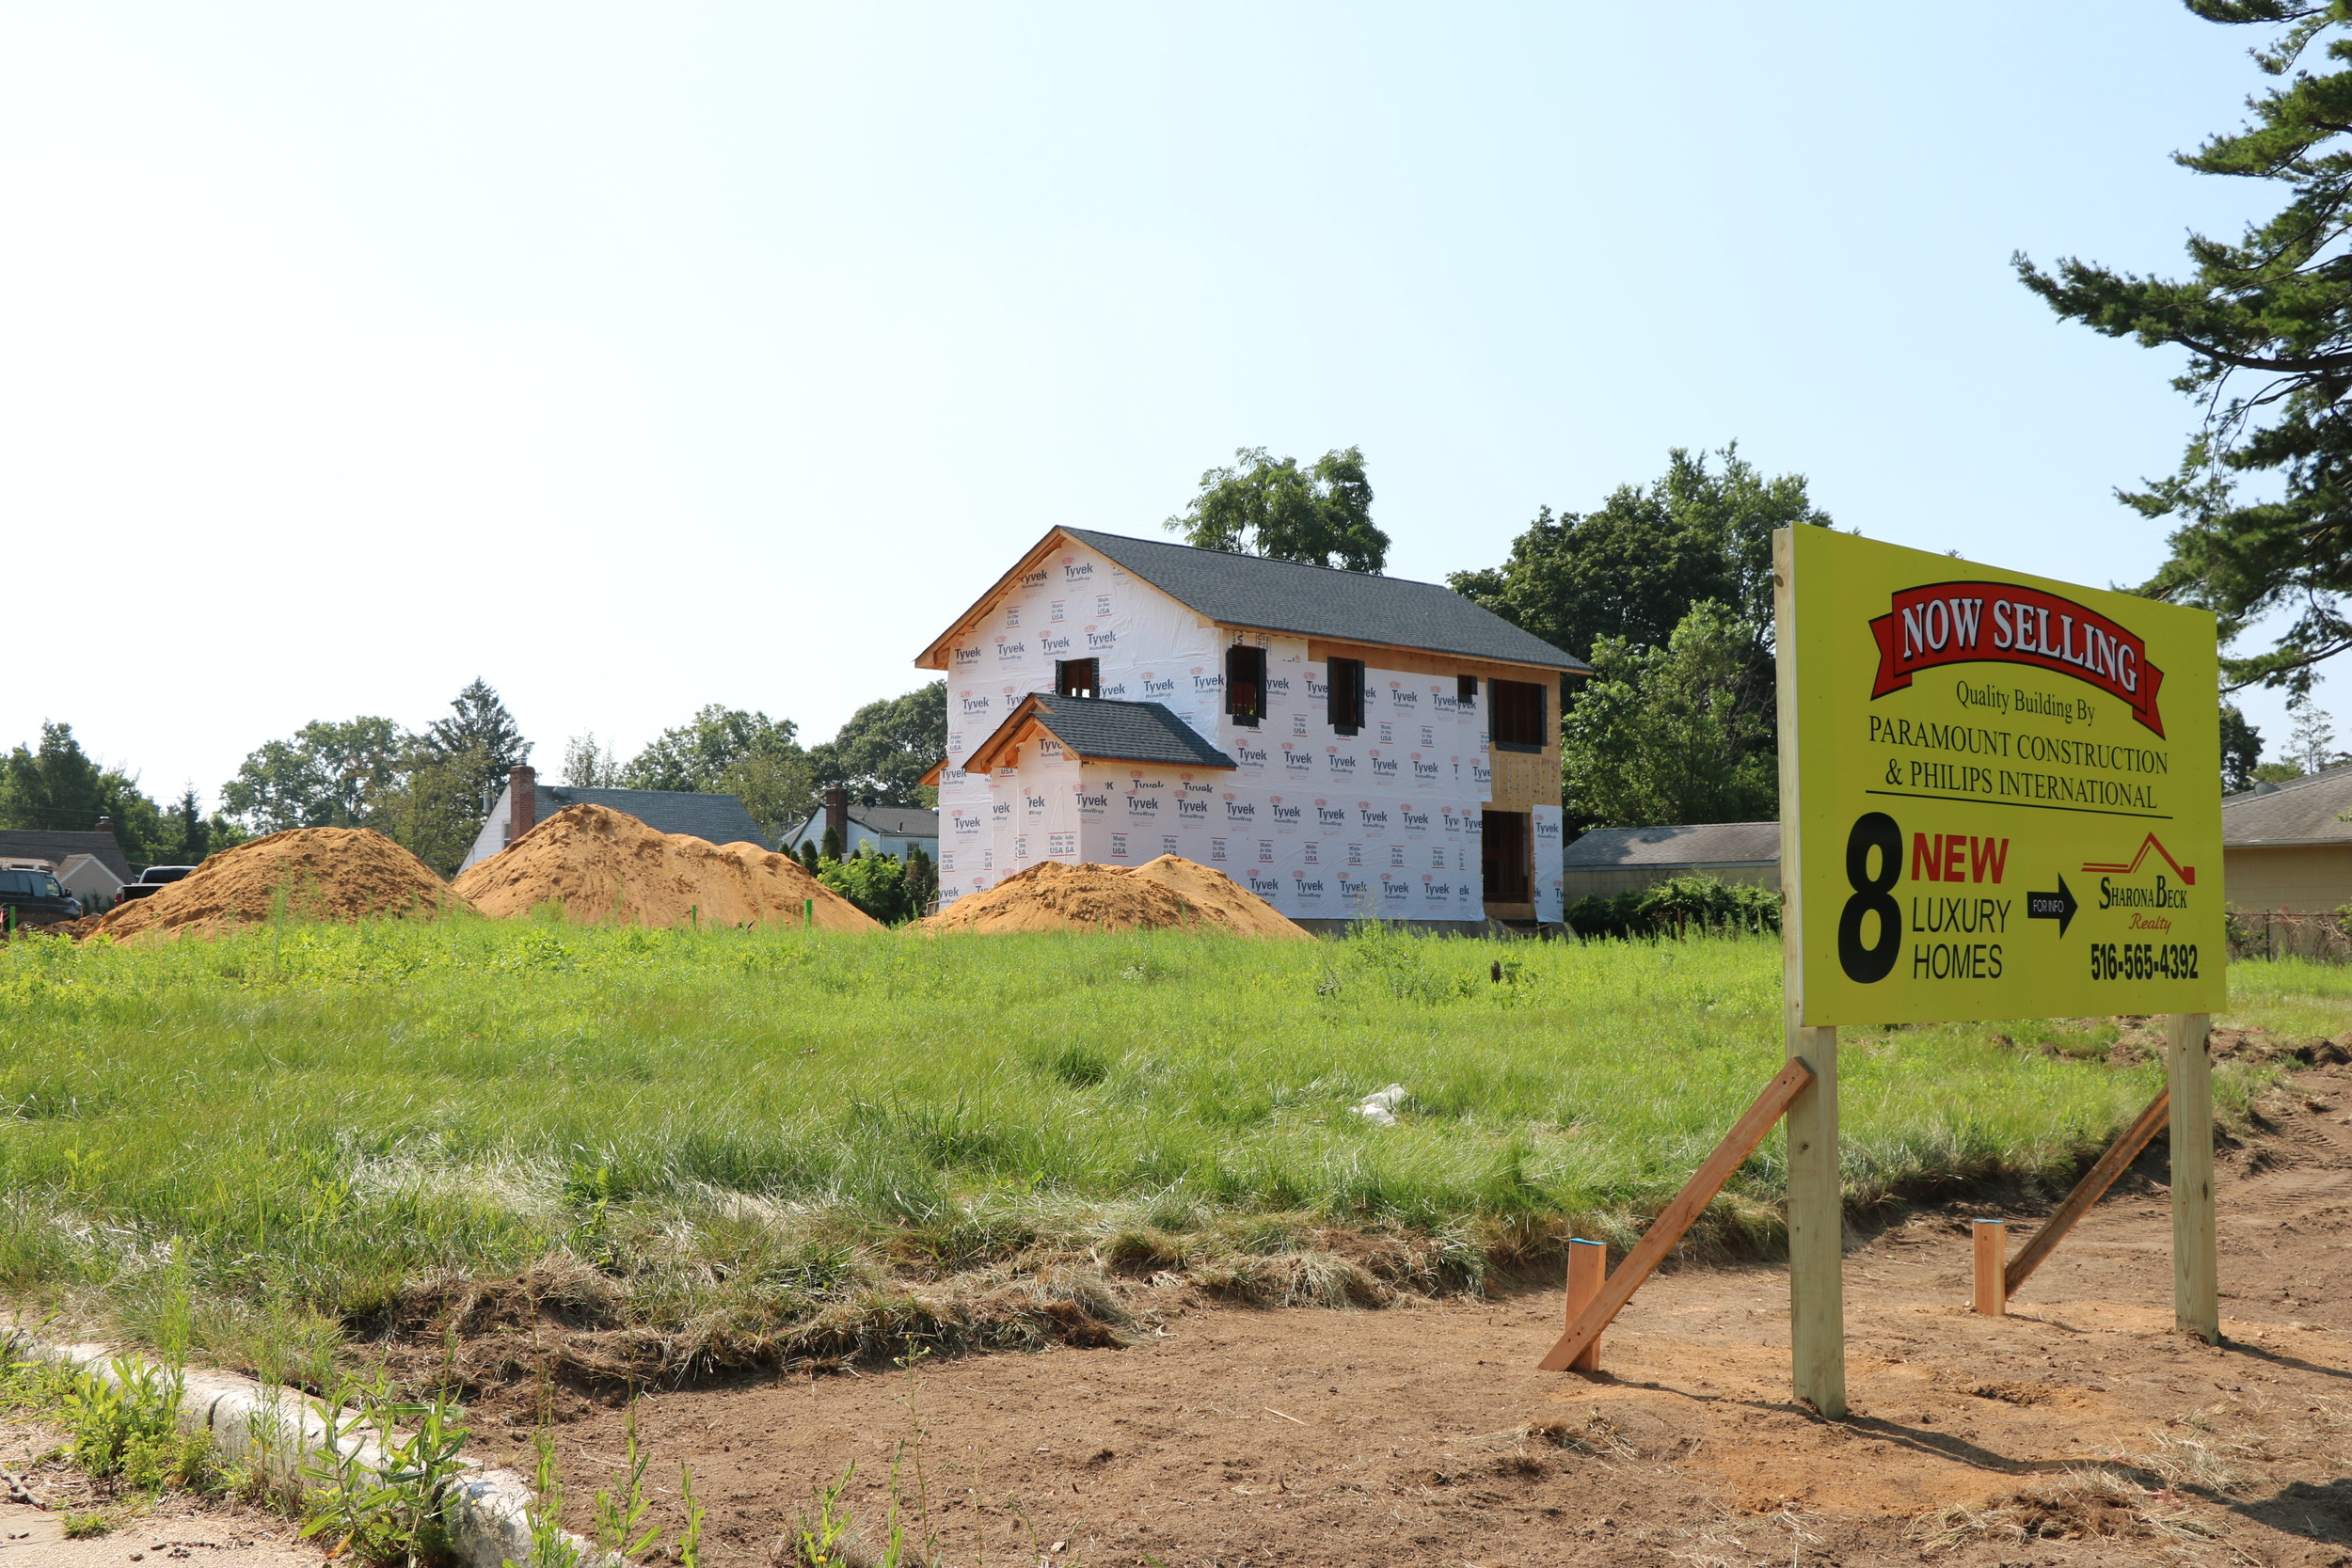 Eight new luxury homes being built at 764 Hempstead Ave. are selling for $925,000 and up. They will occupy land once owned by the Gaeta family.